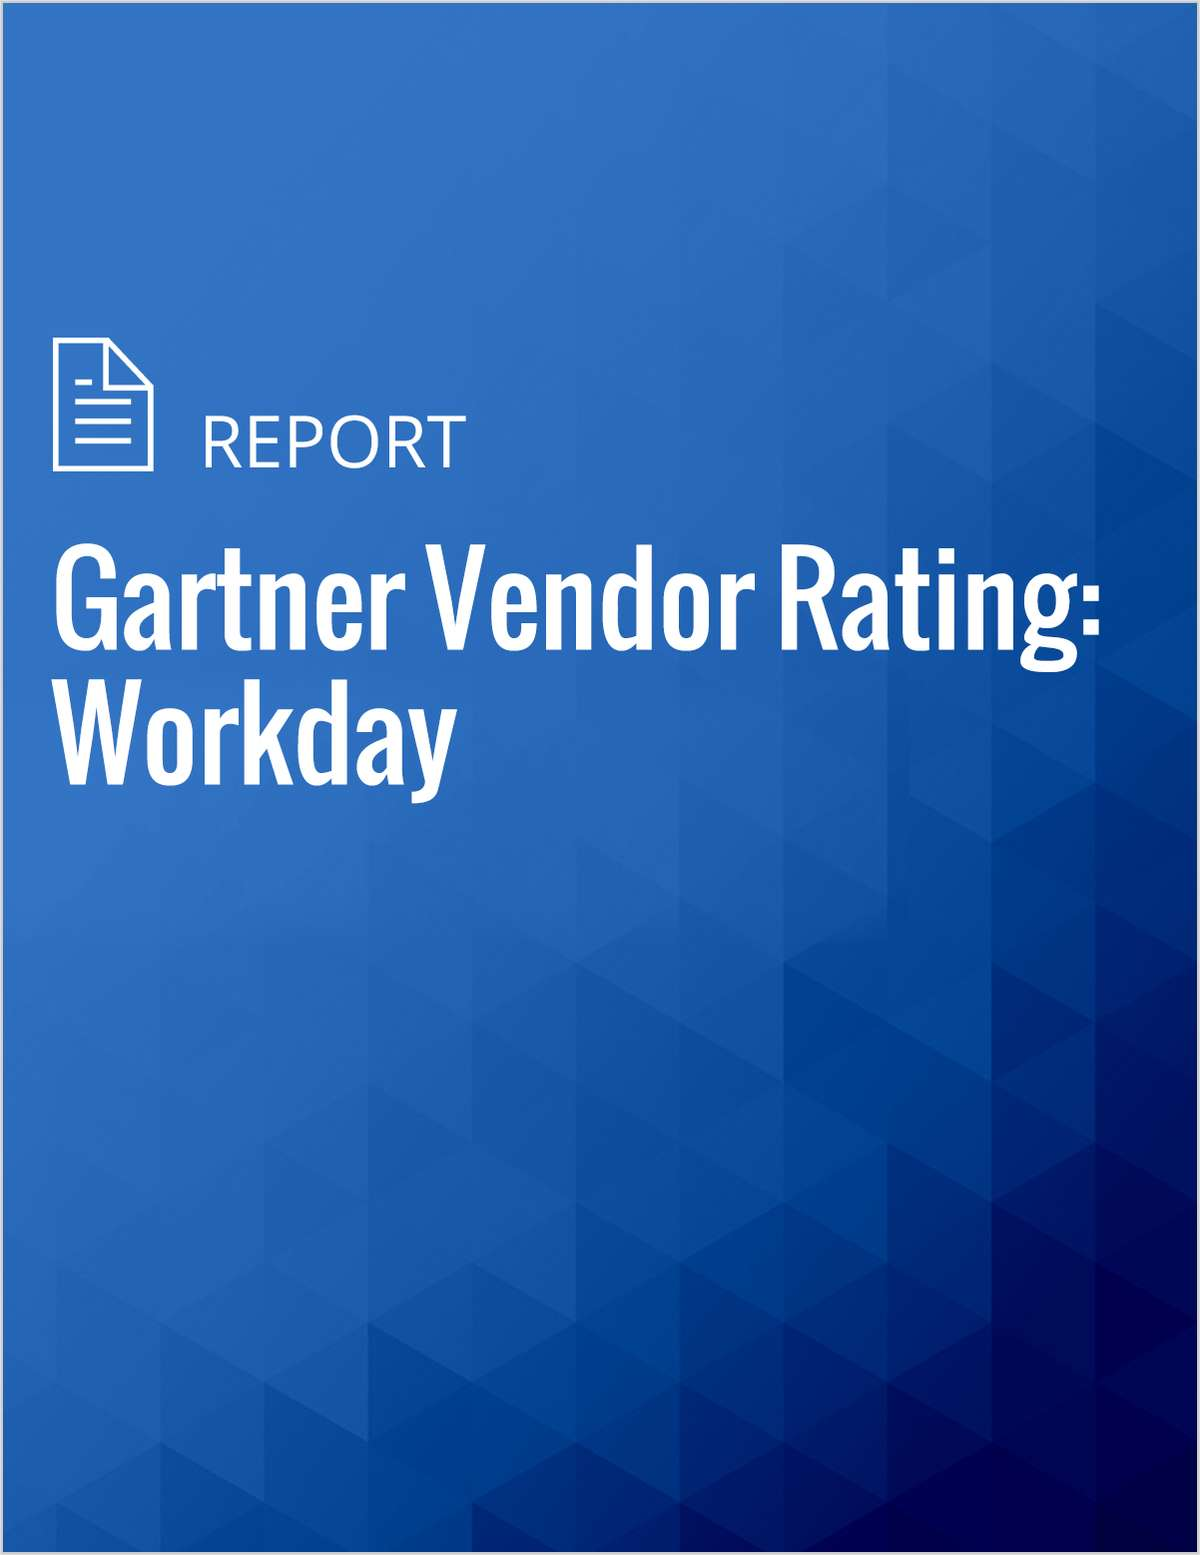 Gartner Vendor Rating: Workday